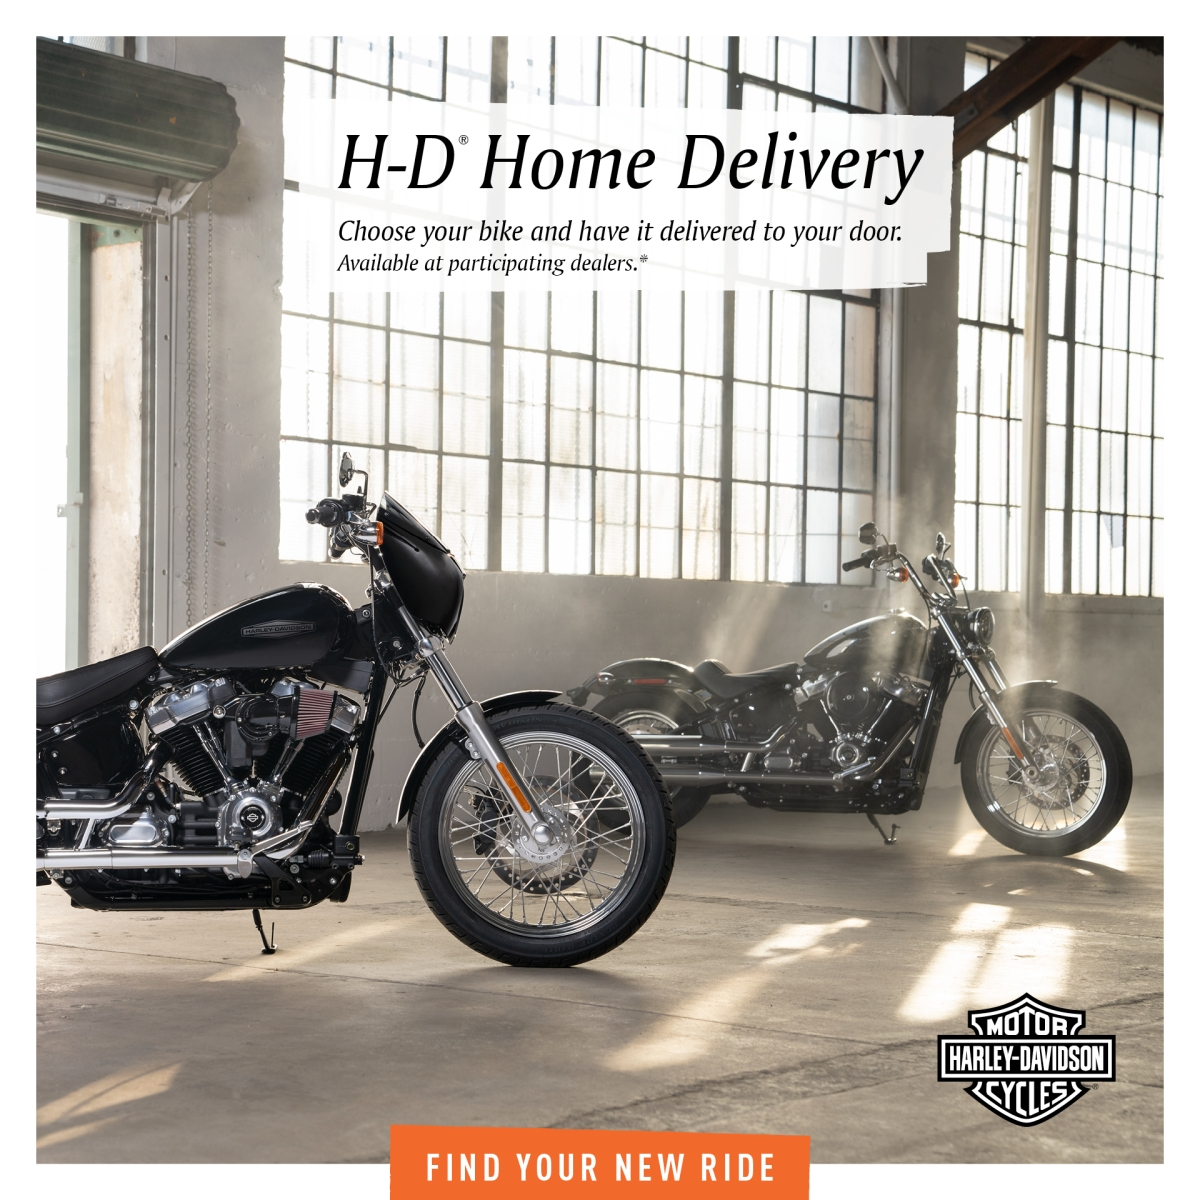 Harley-Davidson India launches home delivery service for its motorcycles among other initiatives...